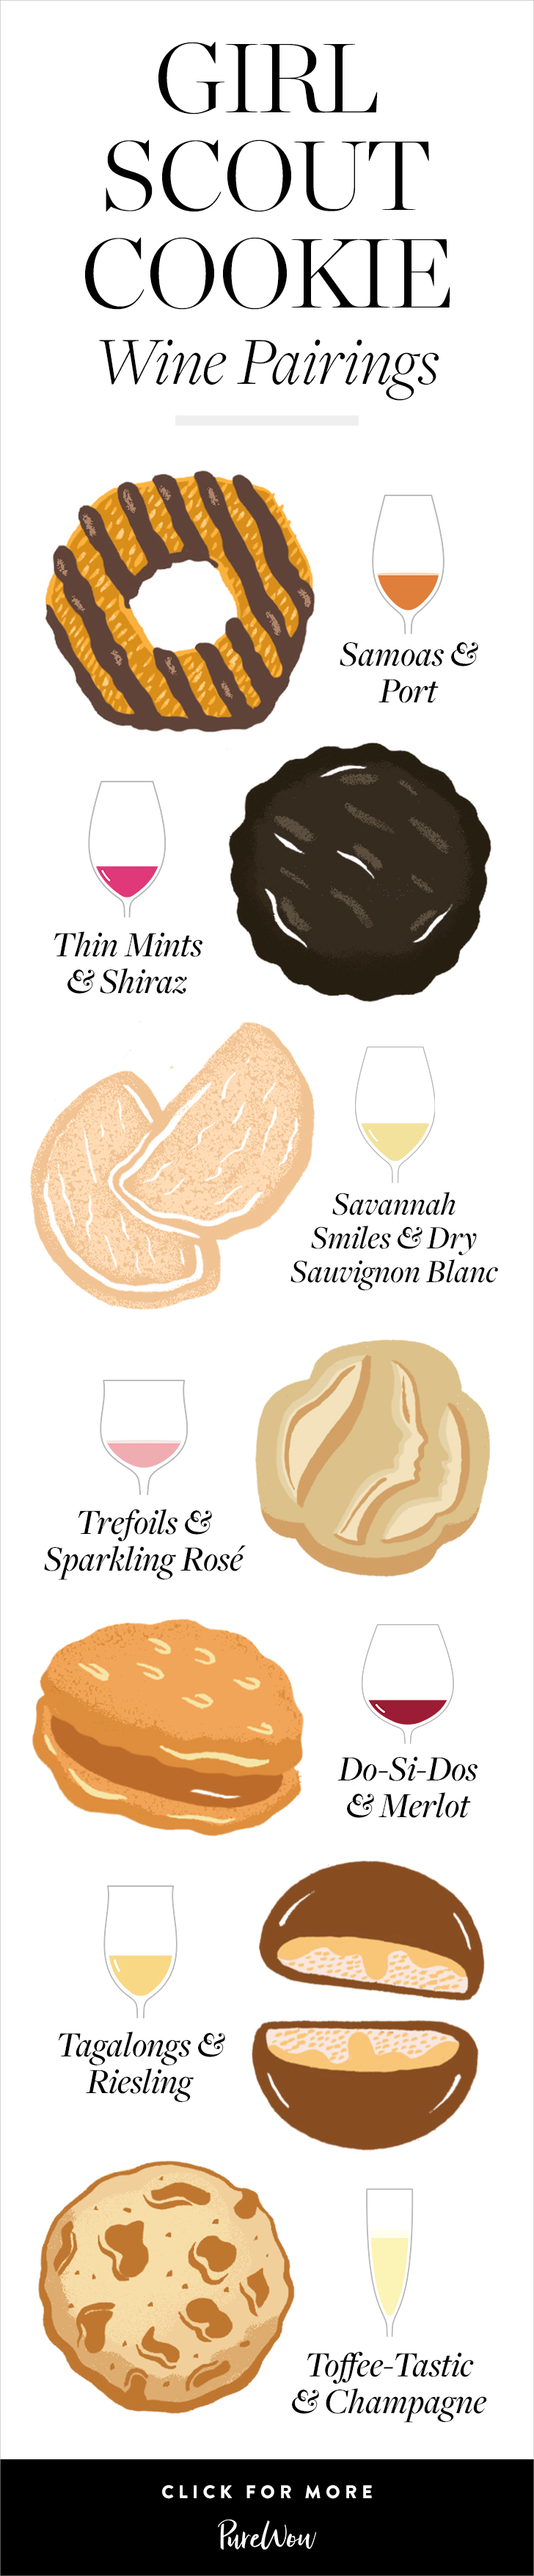 Girl Scout Cookie Wine Pairings.png